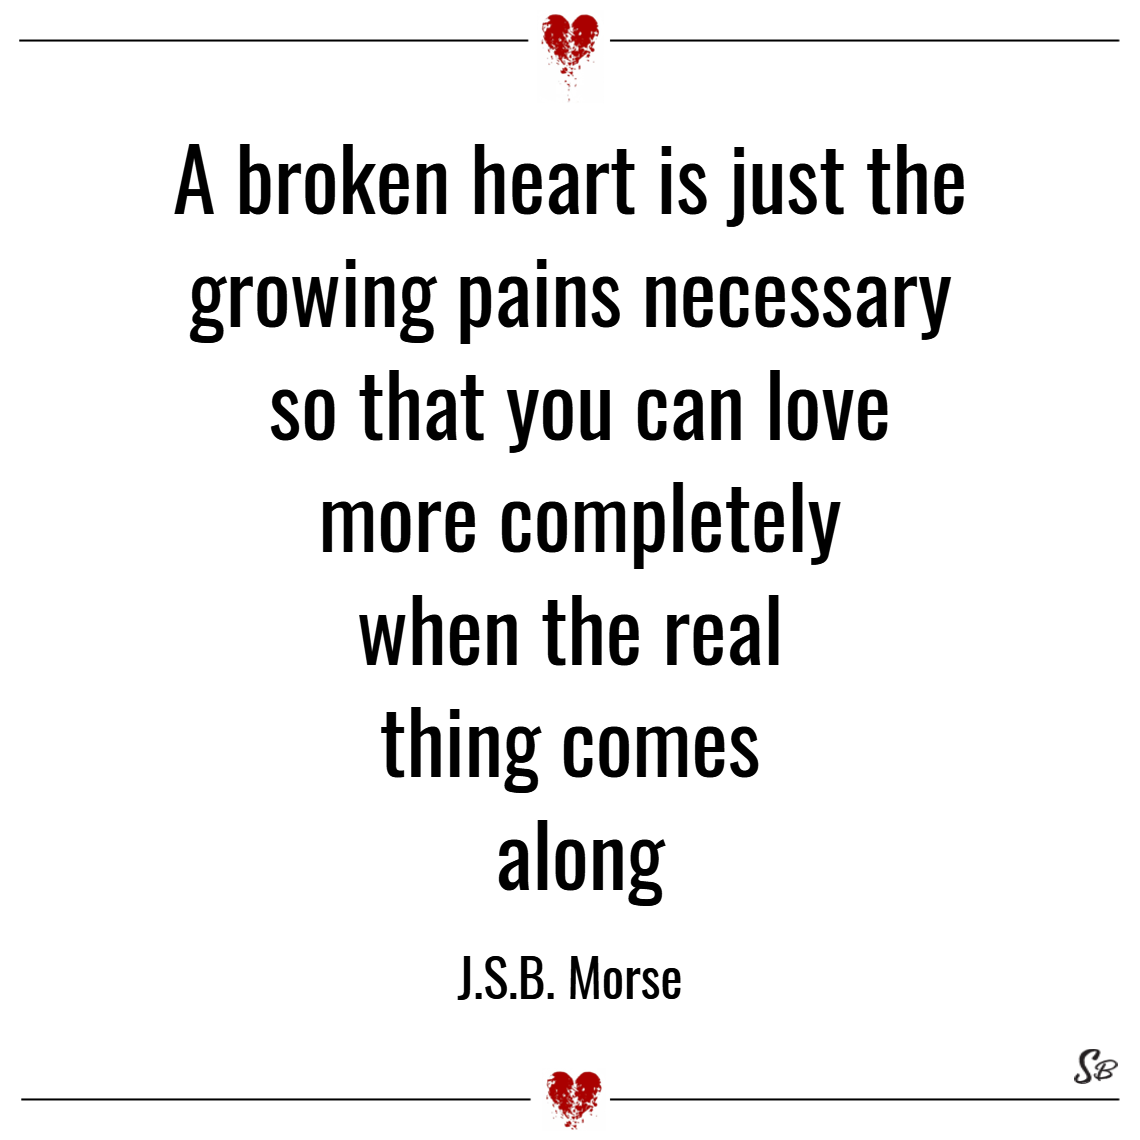 A broken heart is just the growing pains necessary so that you can love more completely when the real thing comes along. – j.s.b. morse